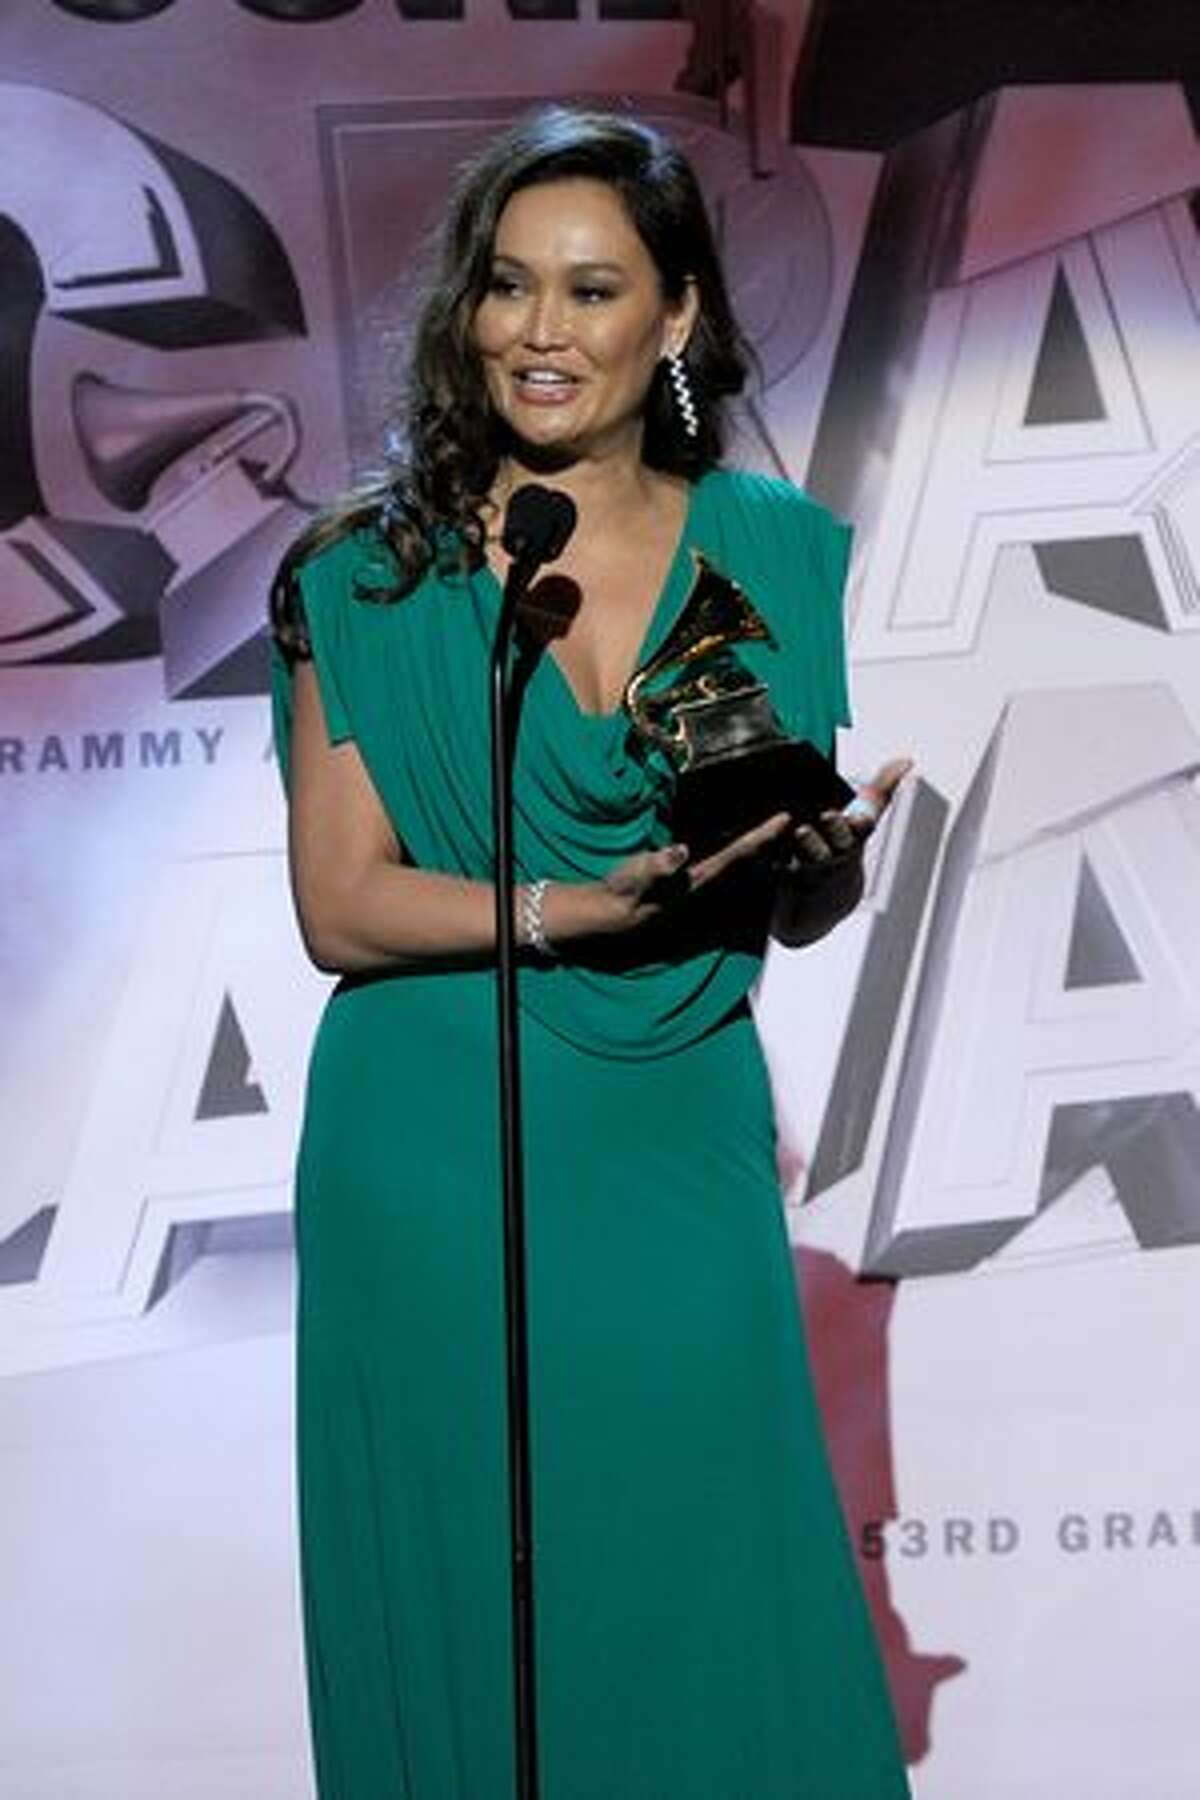 Singer Tia Carrere accepts the Best Hawaiian Music Album Award for Huana Ke Aloha onstage during The 53rd Annual GRAMMY Awards held at Staples Center in Los Angeles, California.